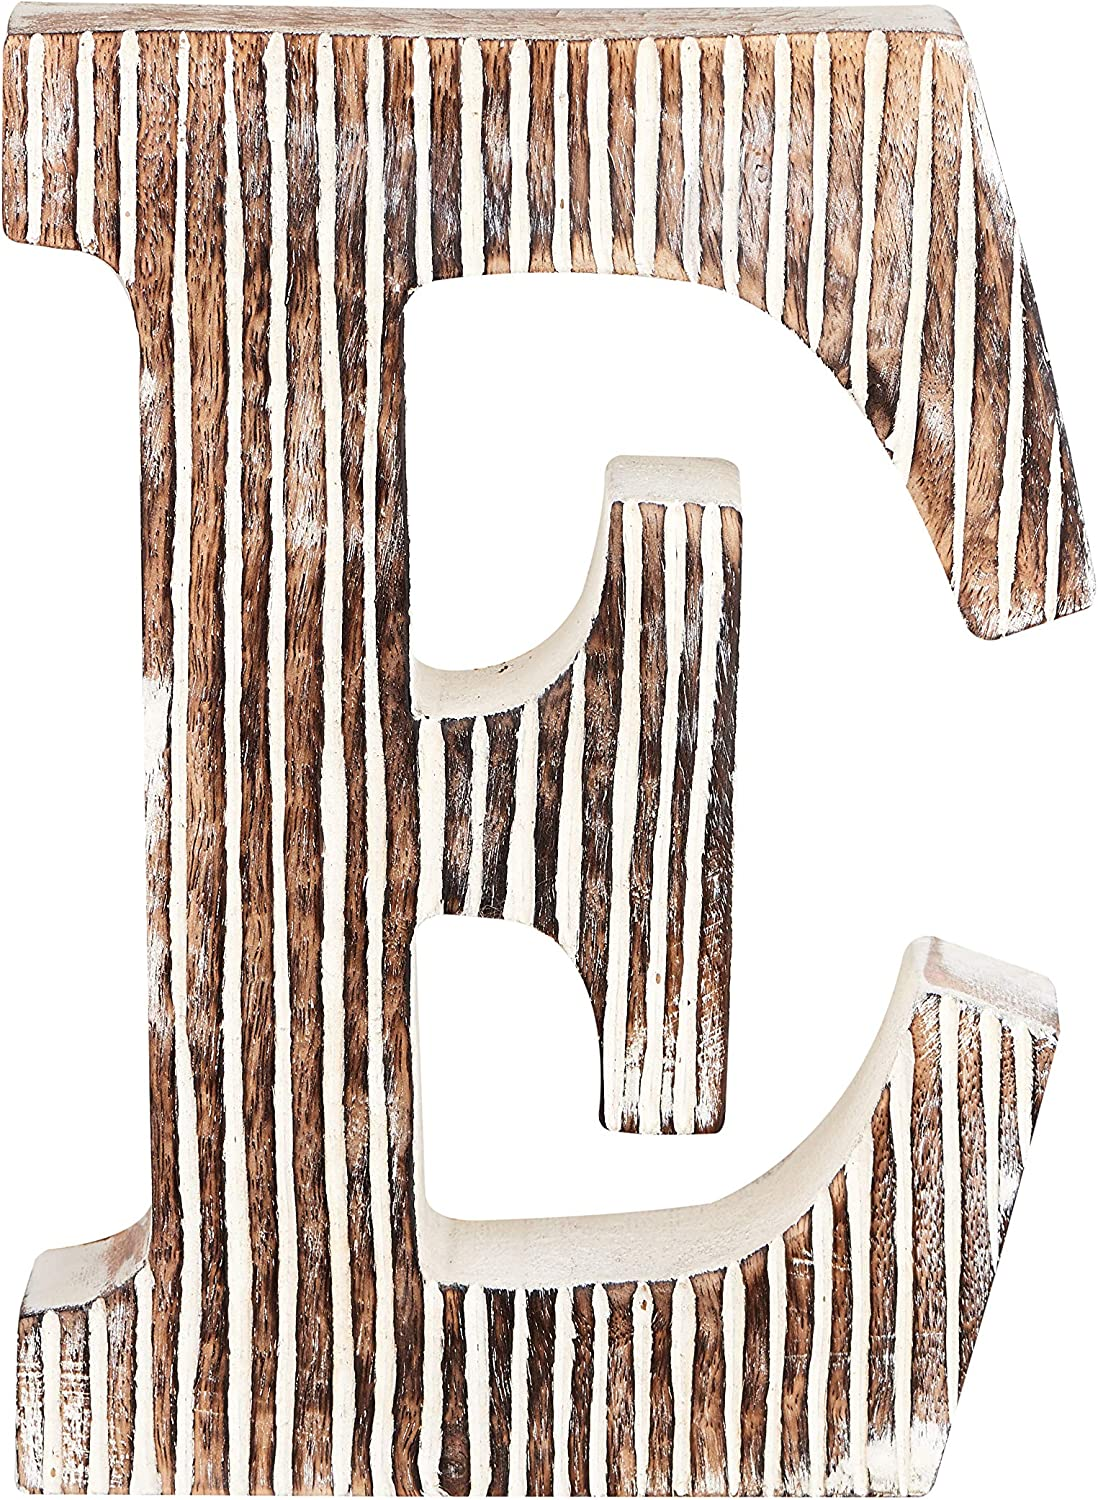 Decorative Wood Letter E | Standing and Hanging Wooden Alphabets Block for Wall Decor | Shabby Chic Wood Block Letter for Wall Table | Alphabet Letter for Home Bedroom Birthday Housewarming Party